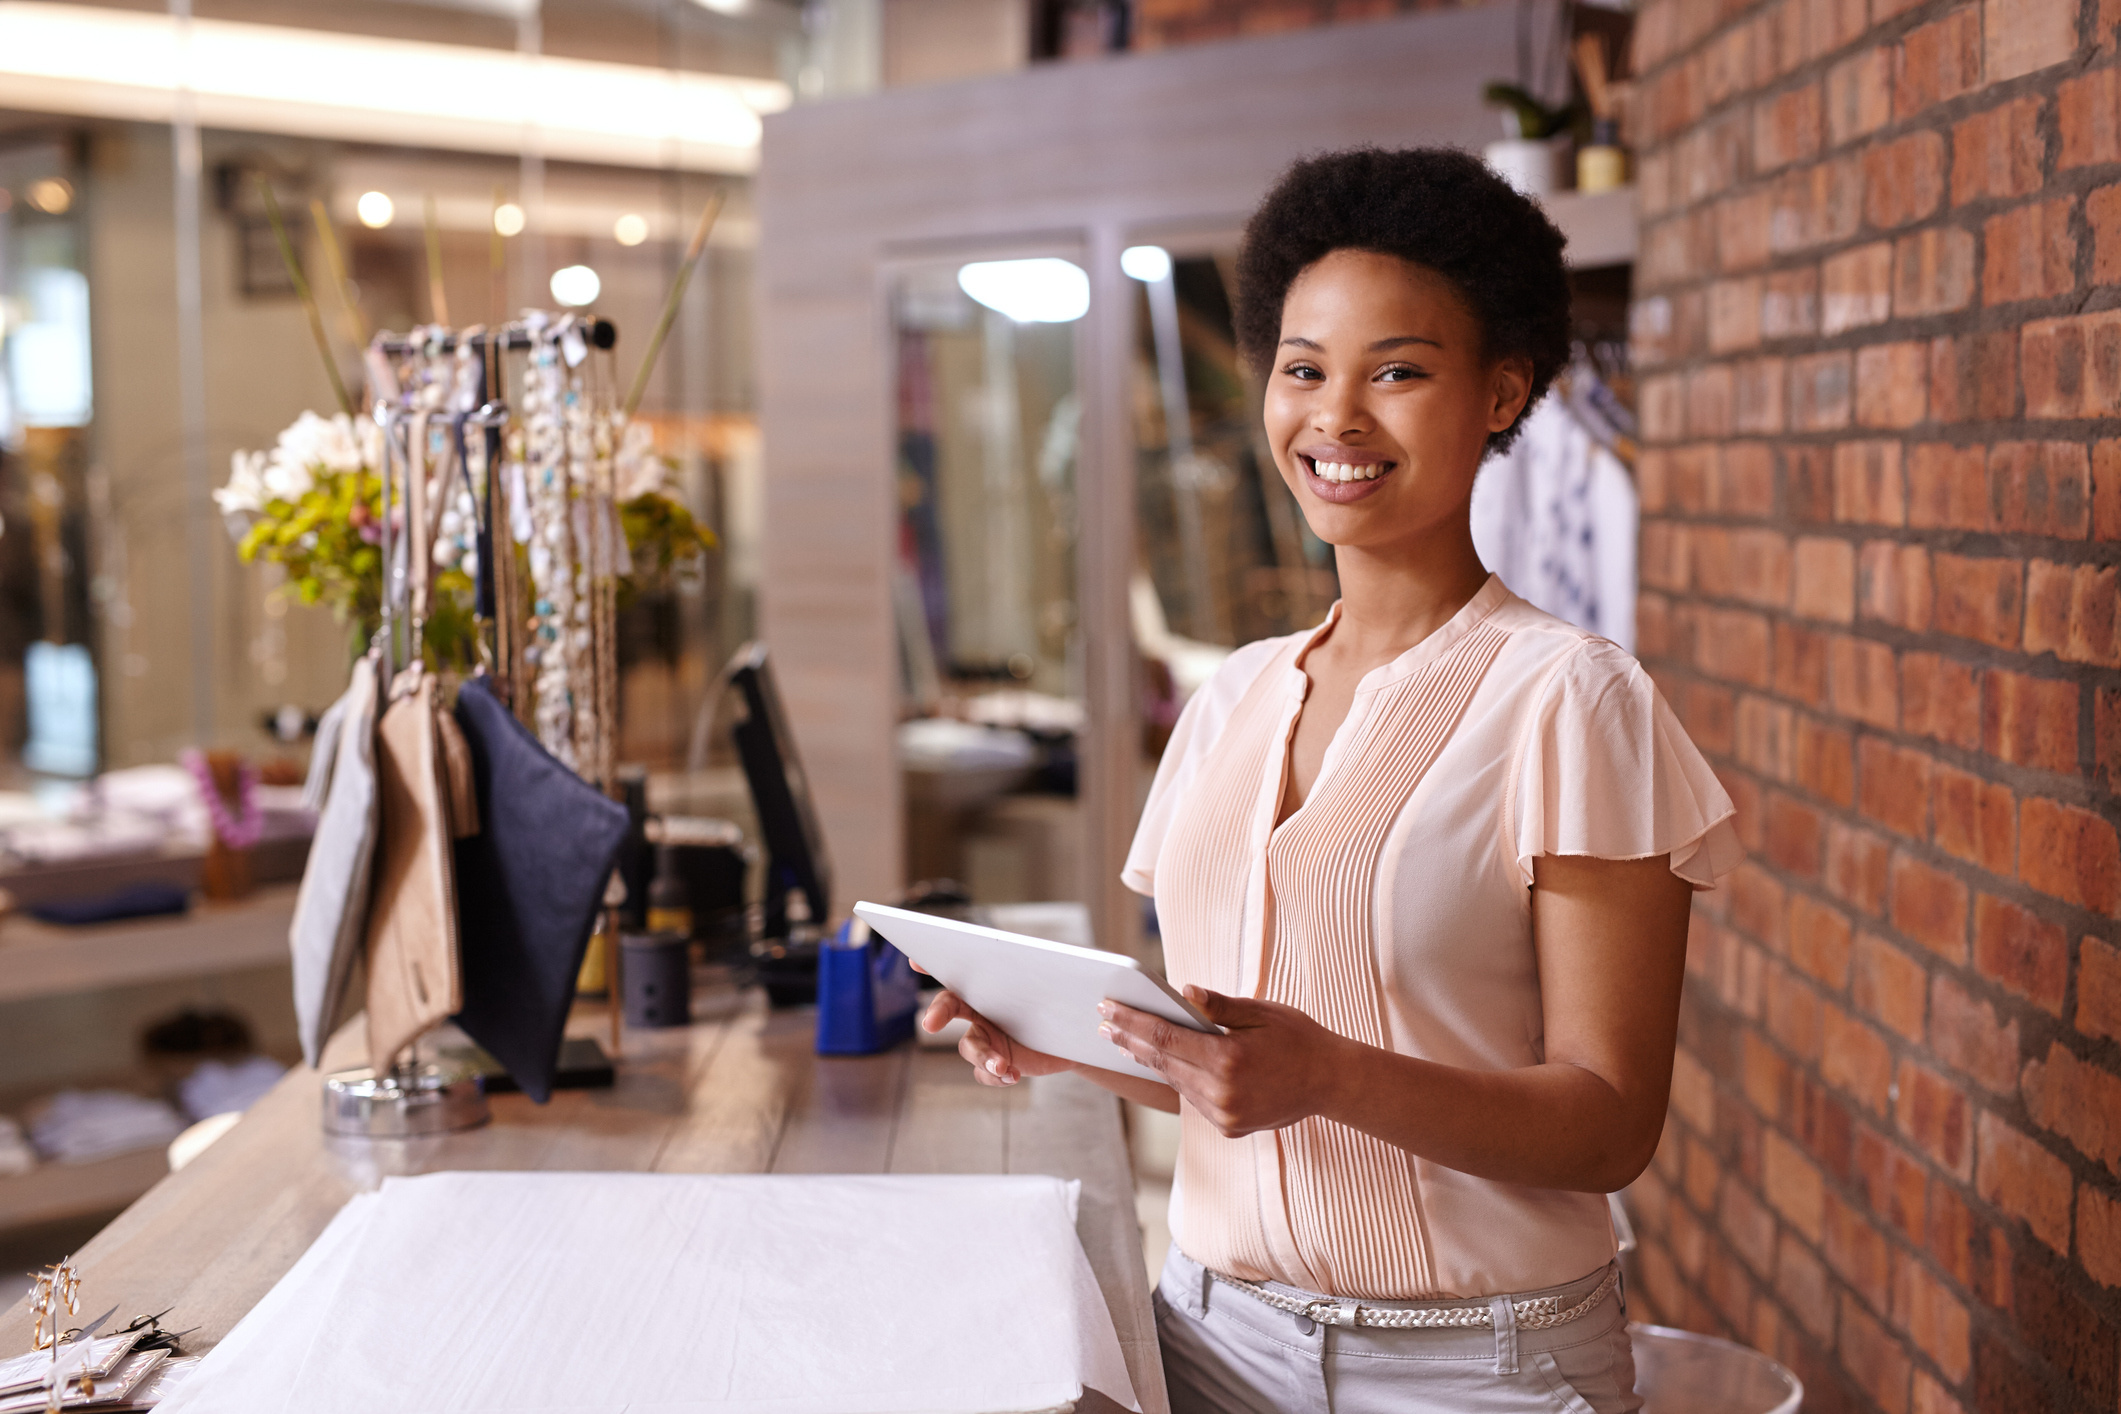 4 Women Share Their Tips To Maximize Your Next Vendor Opportunity